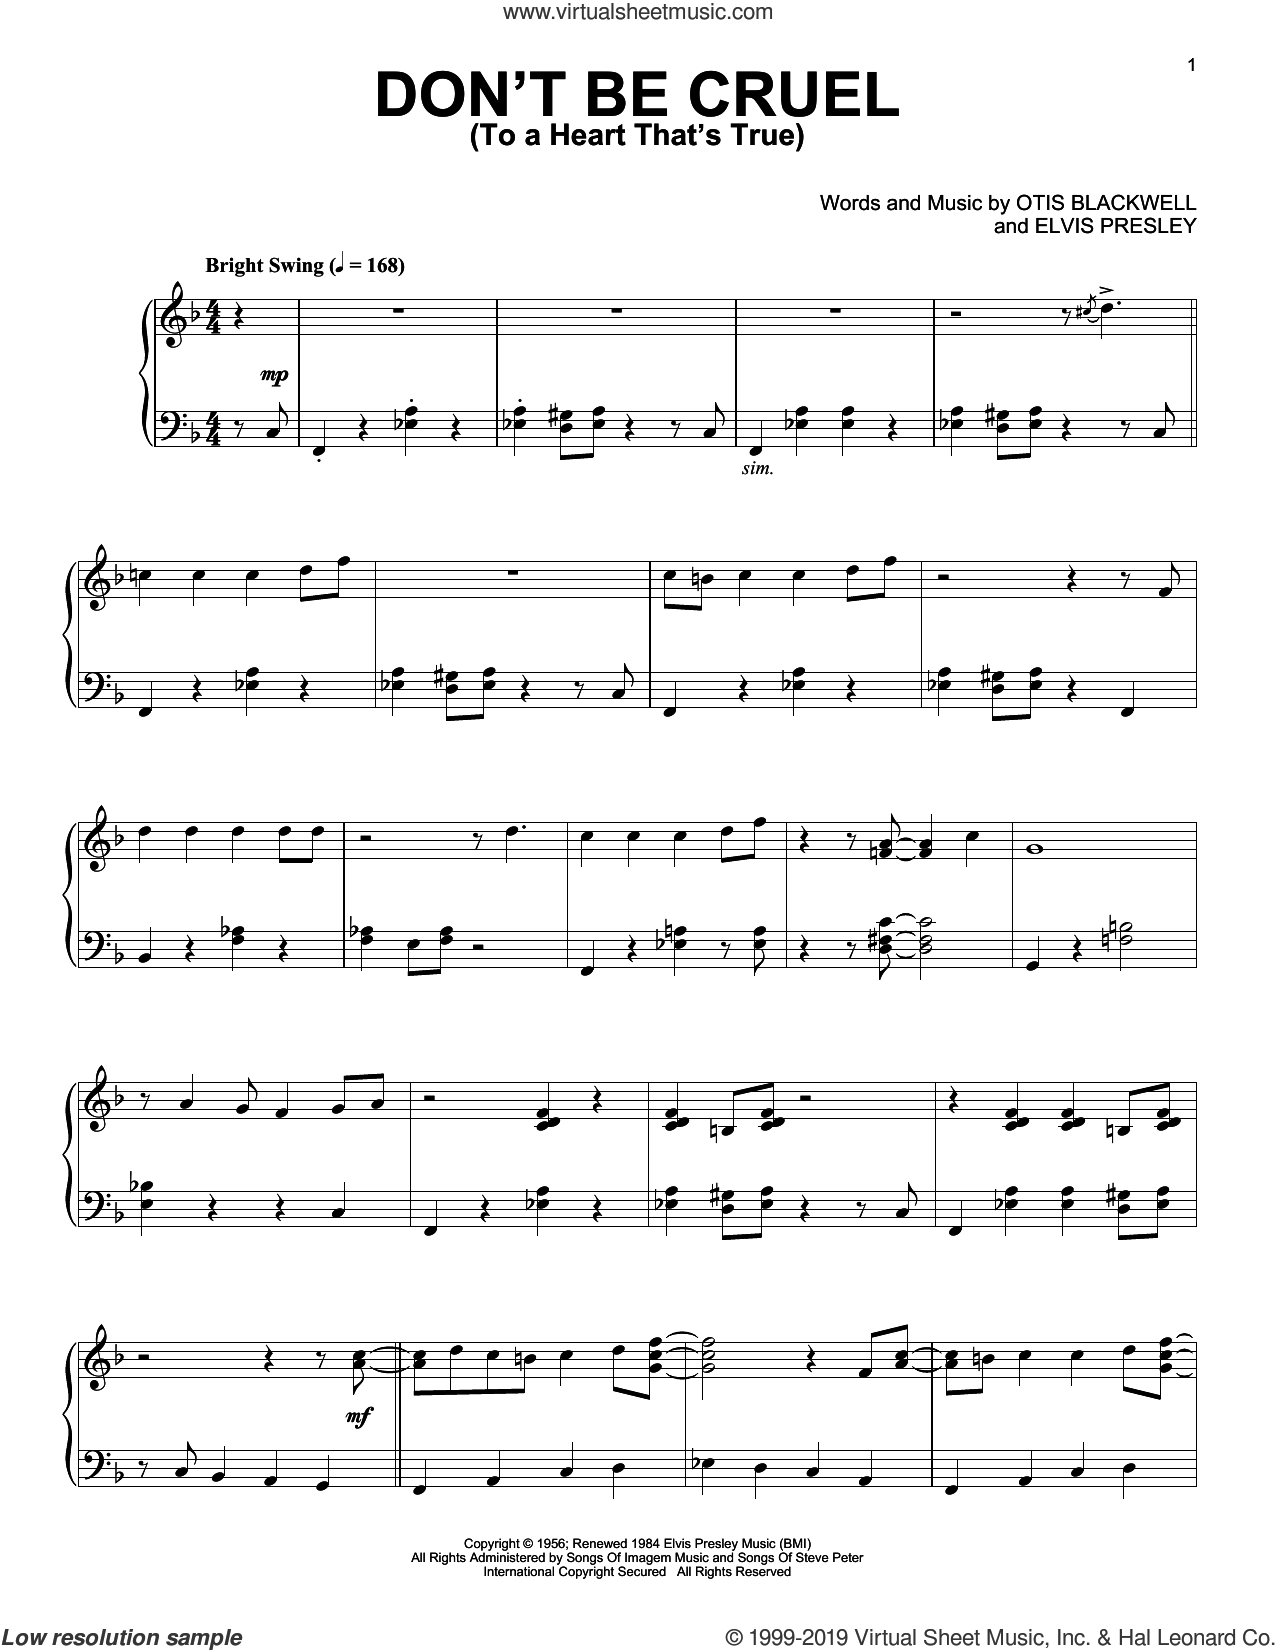 Don't Be Cruel (To A Heart That's True) [Jazz version] sheet music for piano solo by Elvis Presley and Otis Blackwell, intermediate skill level